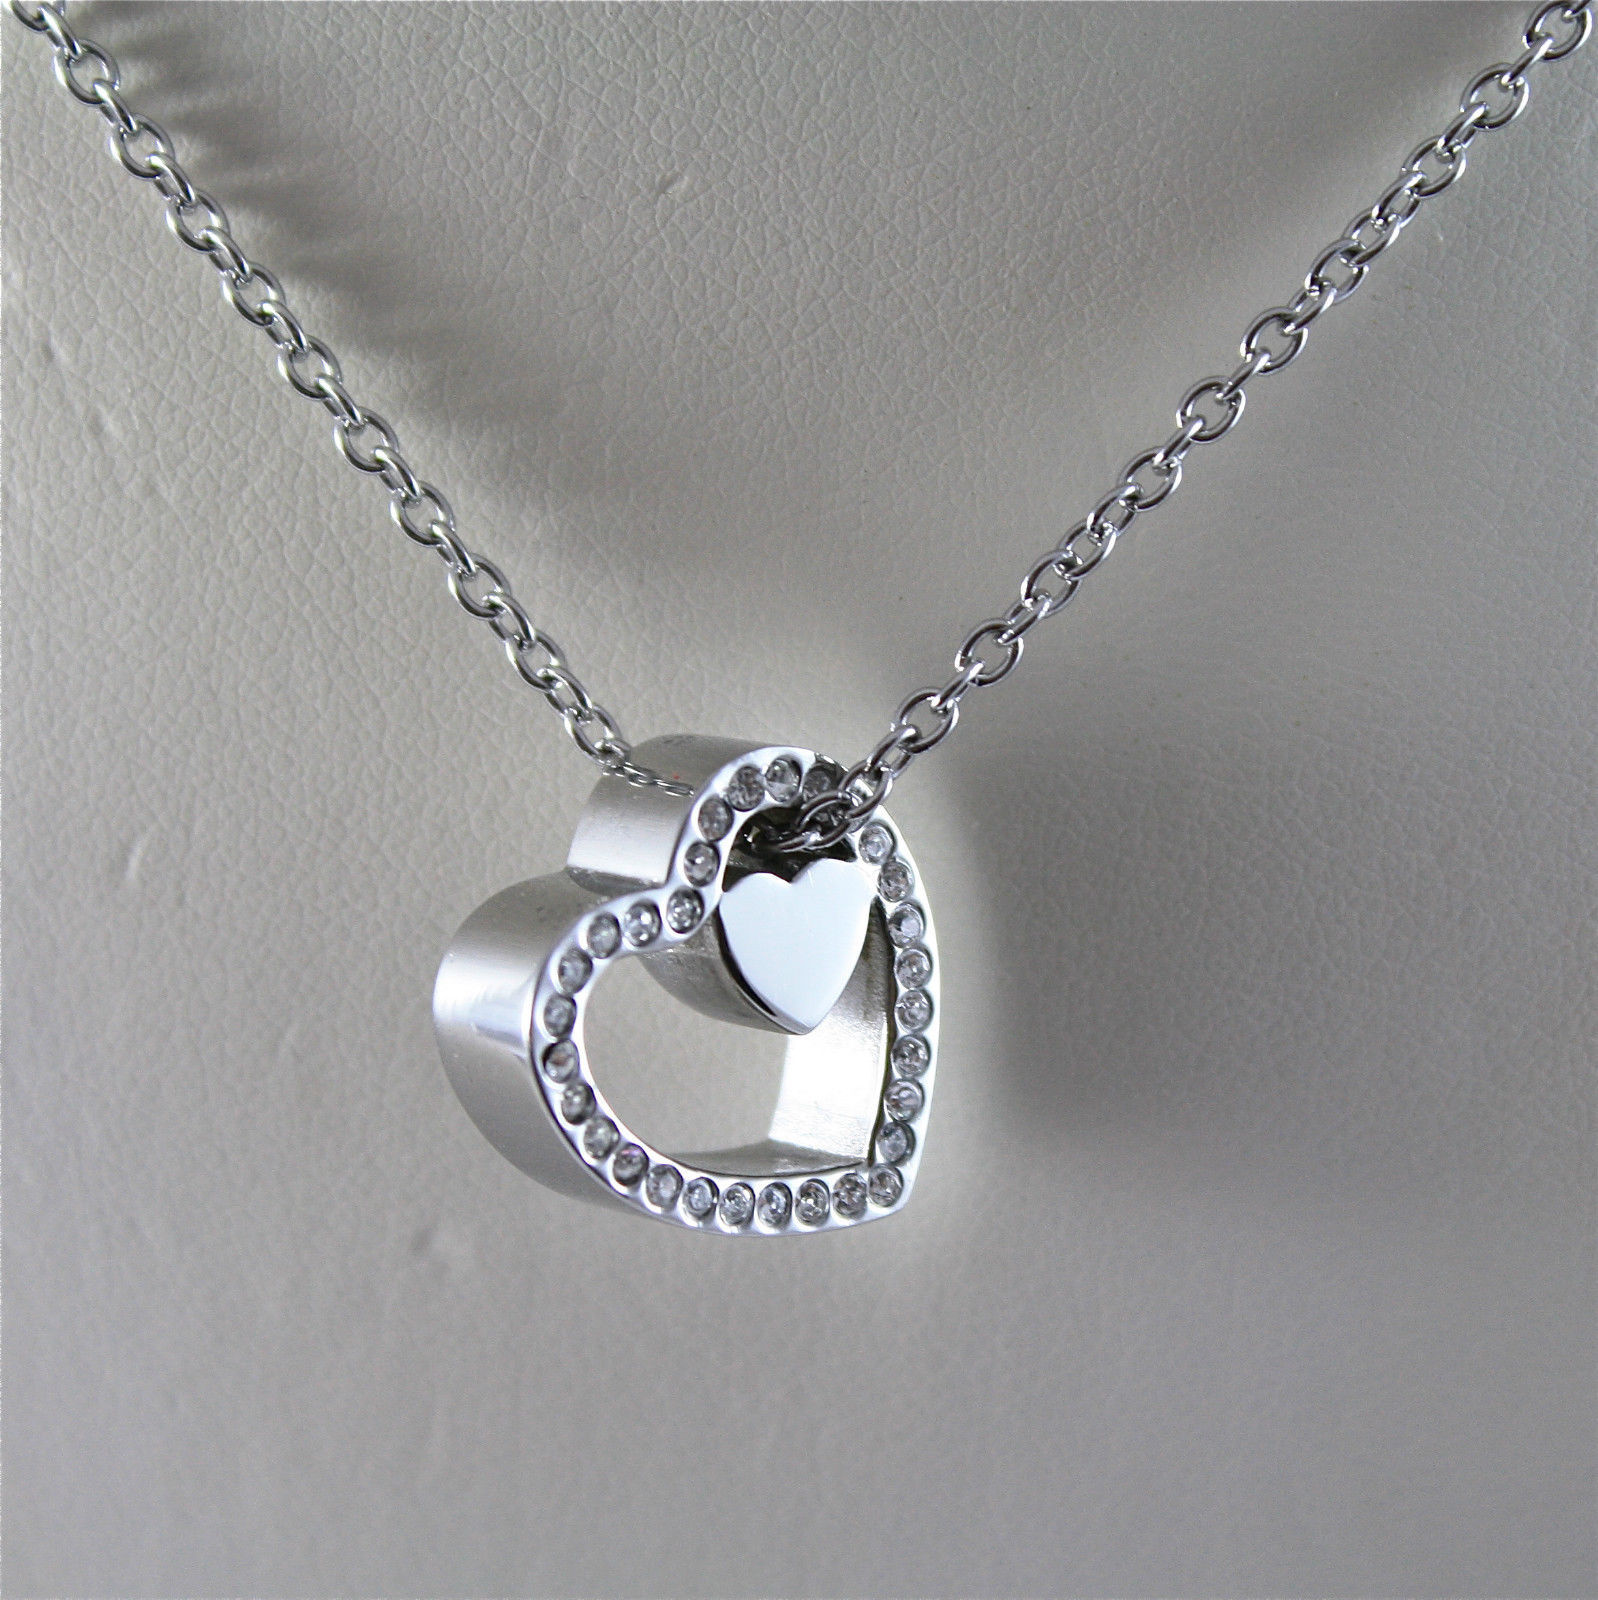 S'AGAPO' NECKLACE, 316L STEEL, HEART IN HEART, FACETED CRYSTALS.